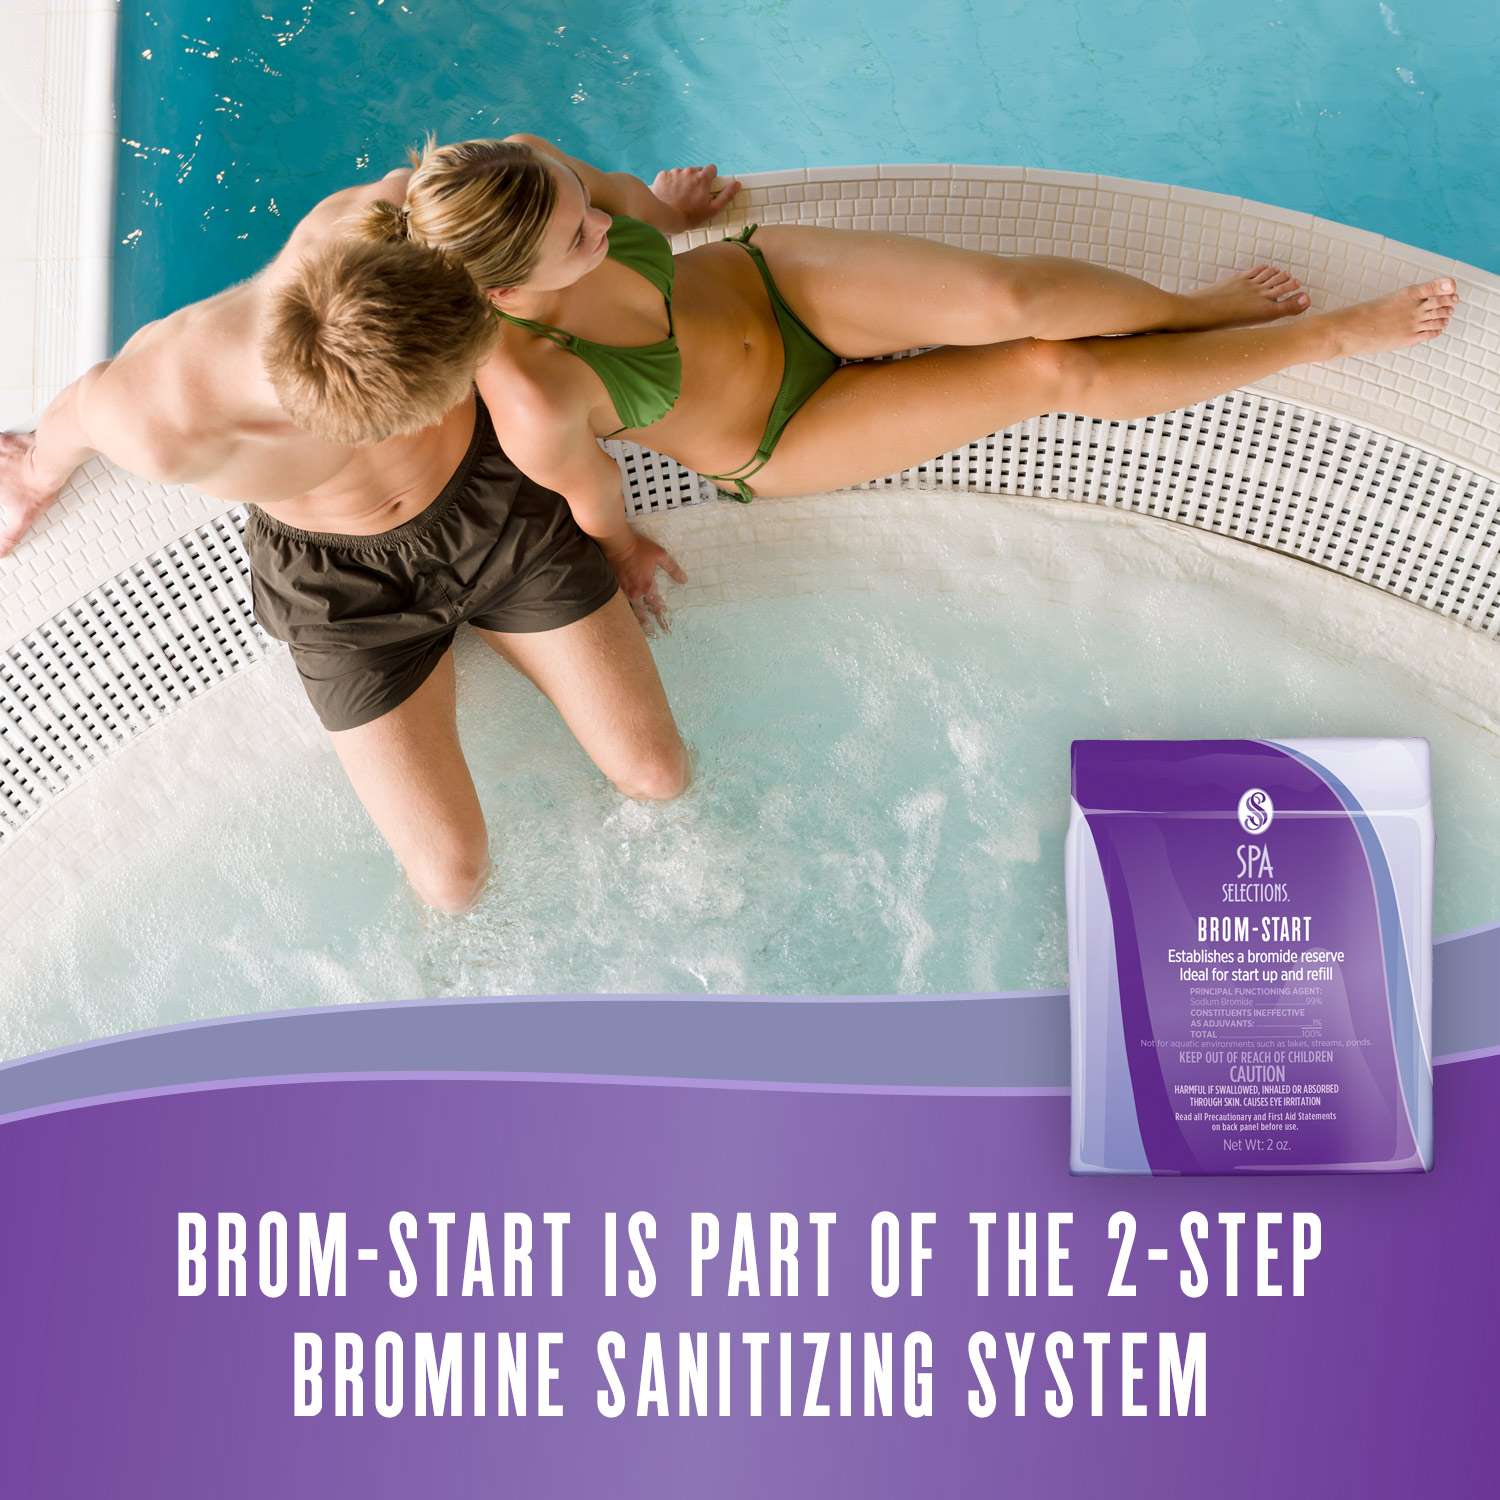 Couple enjoying an outdoor hot tub. Spa Selections Brom-Start is part of the 2-step bromine sanitizing system.